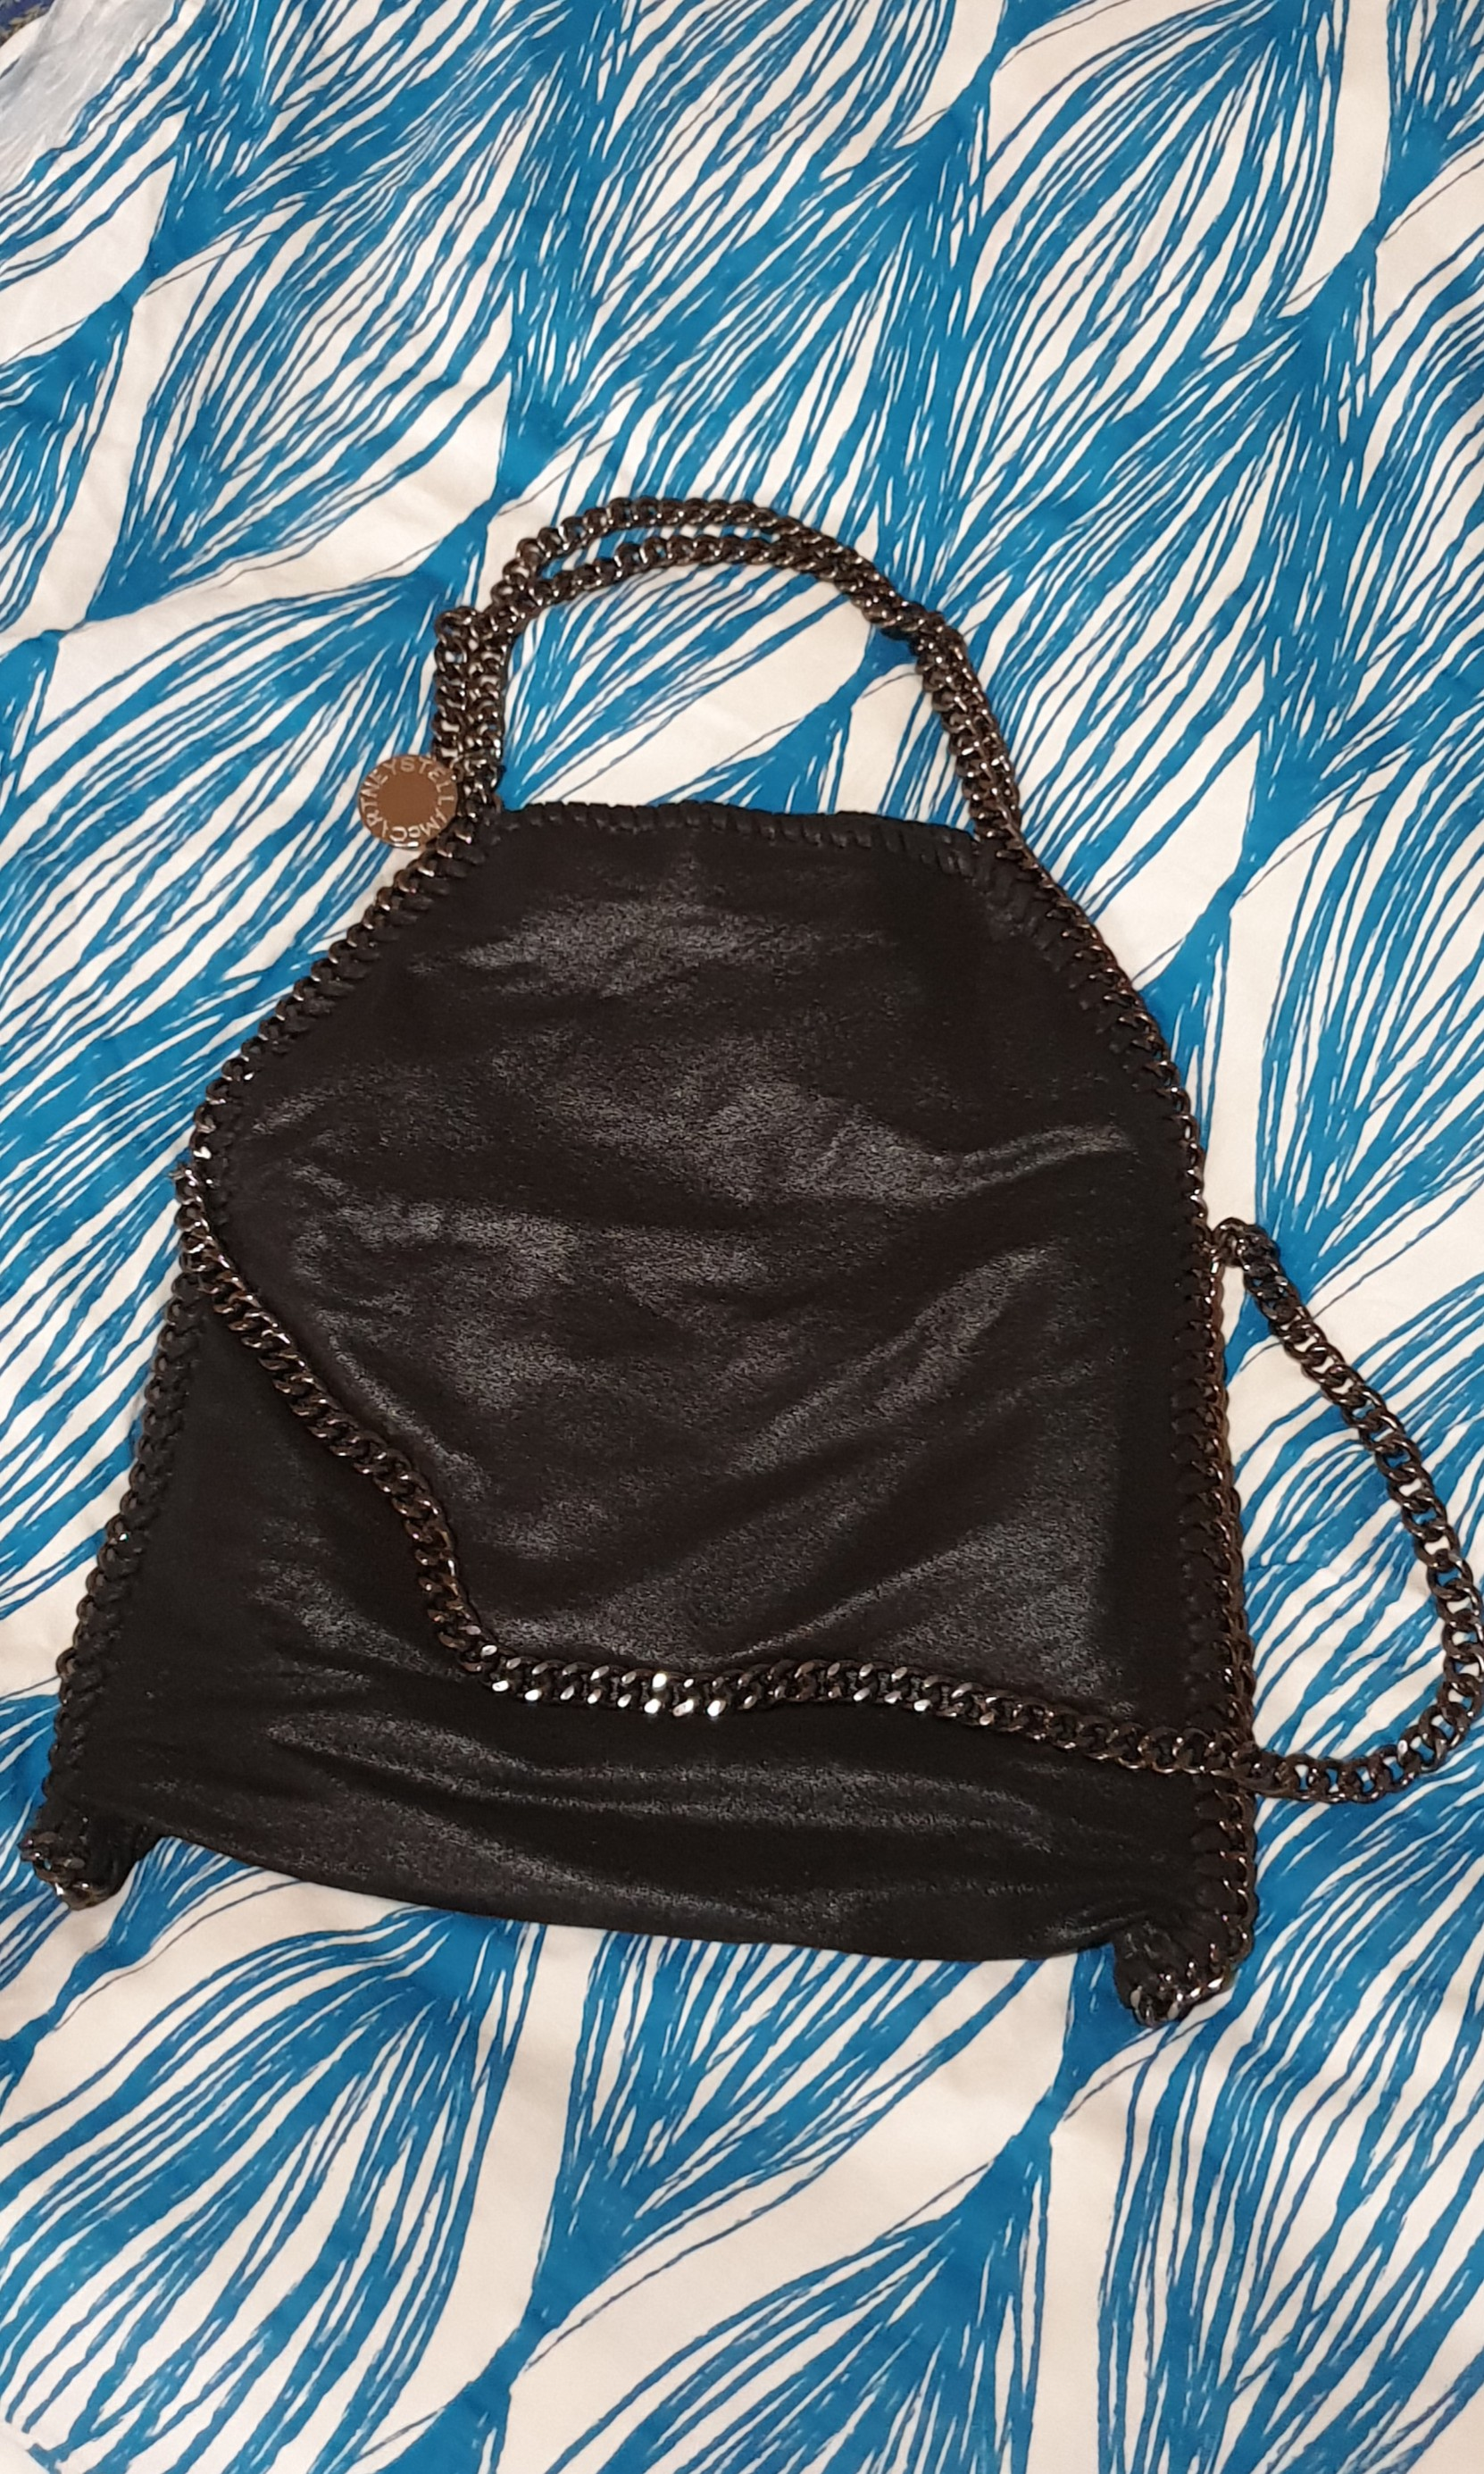 a088c4c8c6d0e Stella McCartney Falabella Shaggy Deer Fold over Tote - Black ...